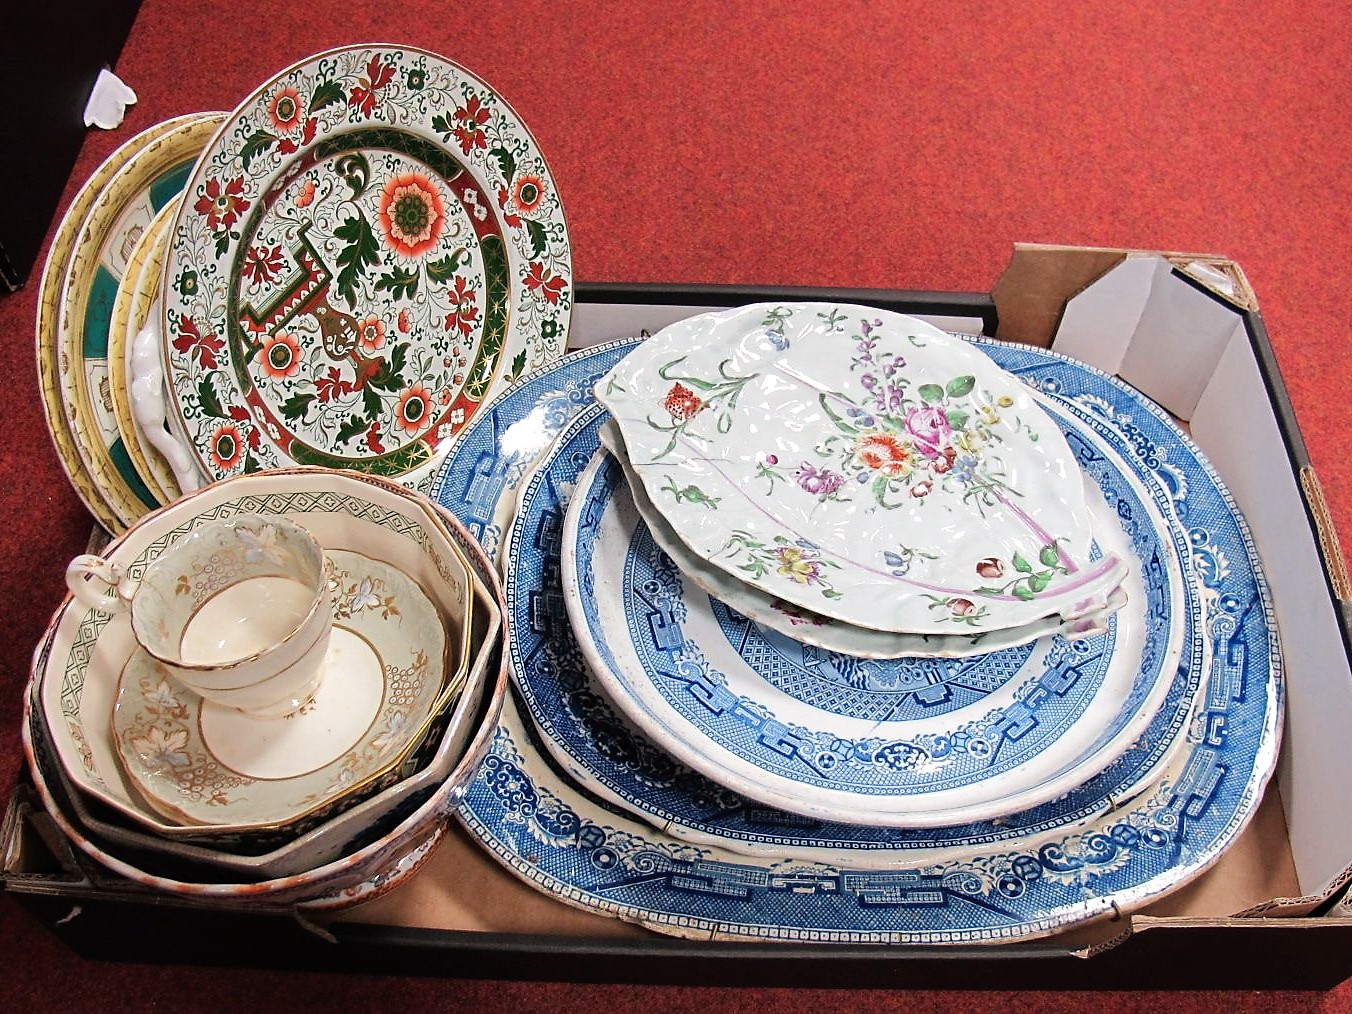 Lot 8 - Victorian Willow Pattern Wares, including meat plates, cake stand, and other Victorian pottery,